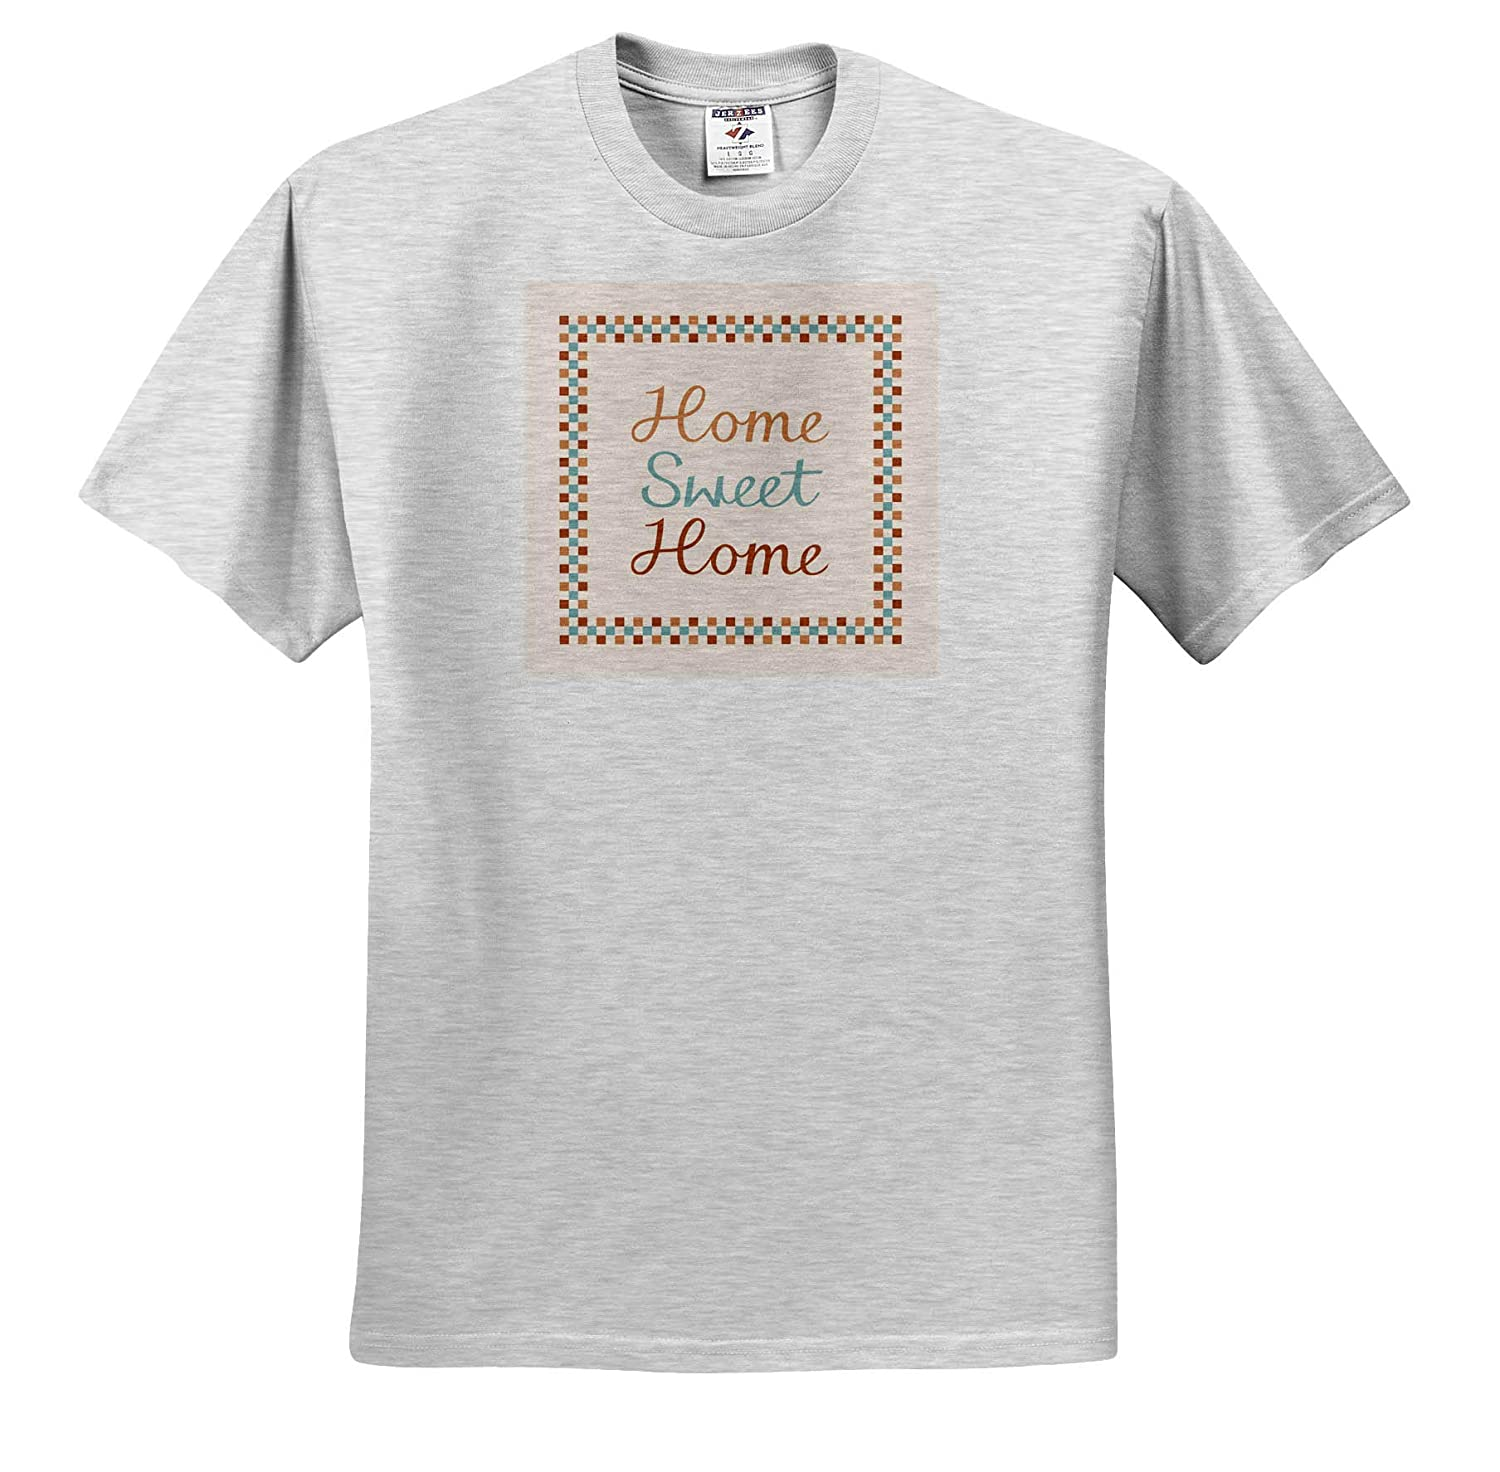 Cream and Terracotta Colors 3dRose Natalie Paskell Typographic Designs - T-Shirts Home Sweet Home Script in Teal